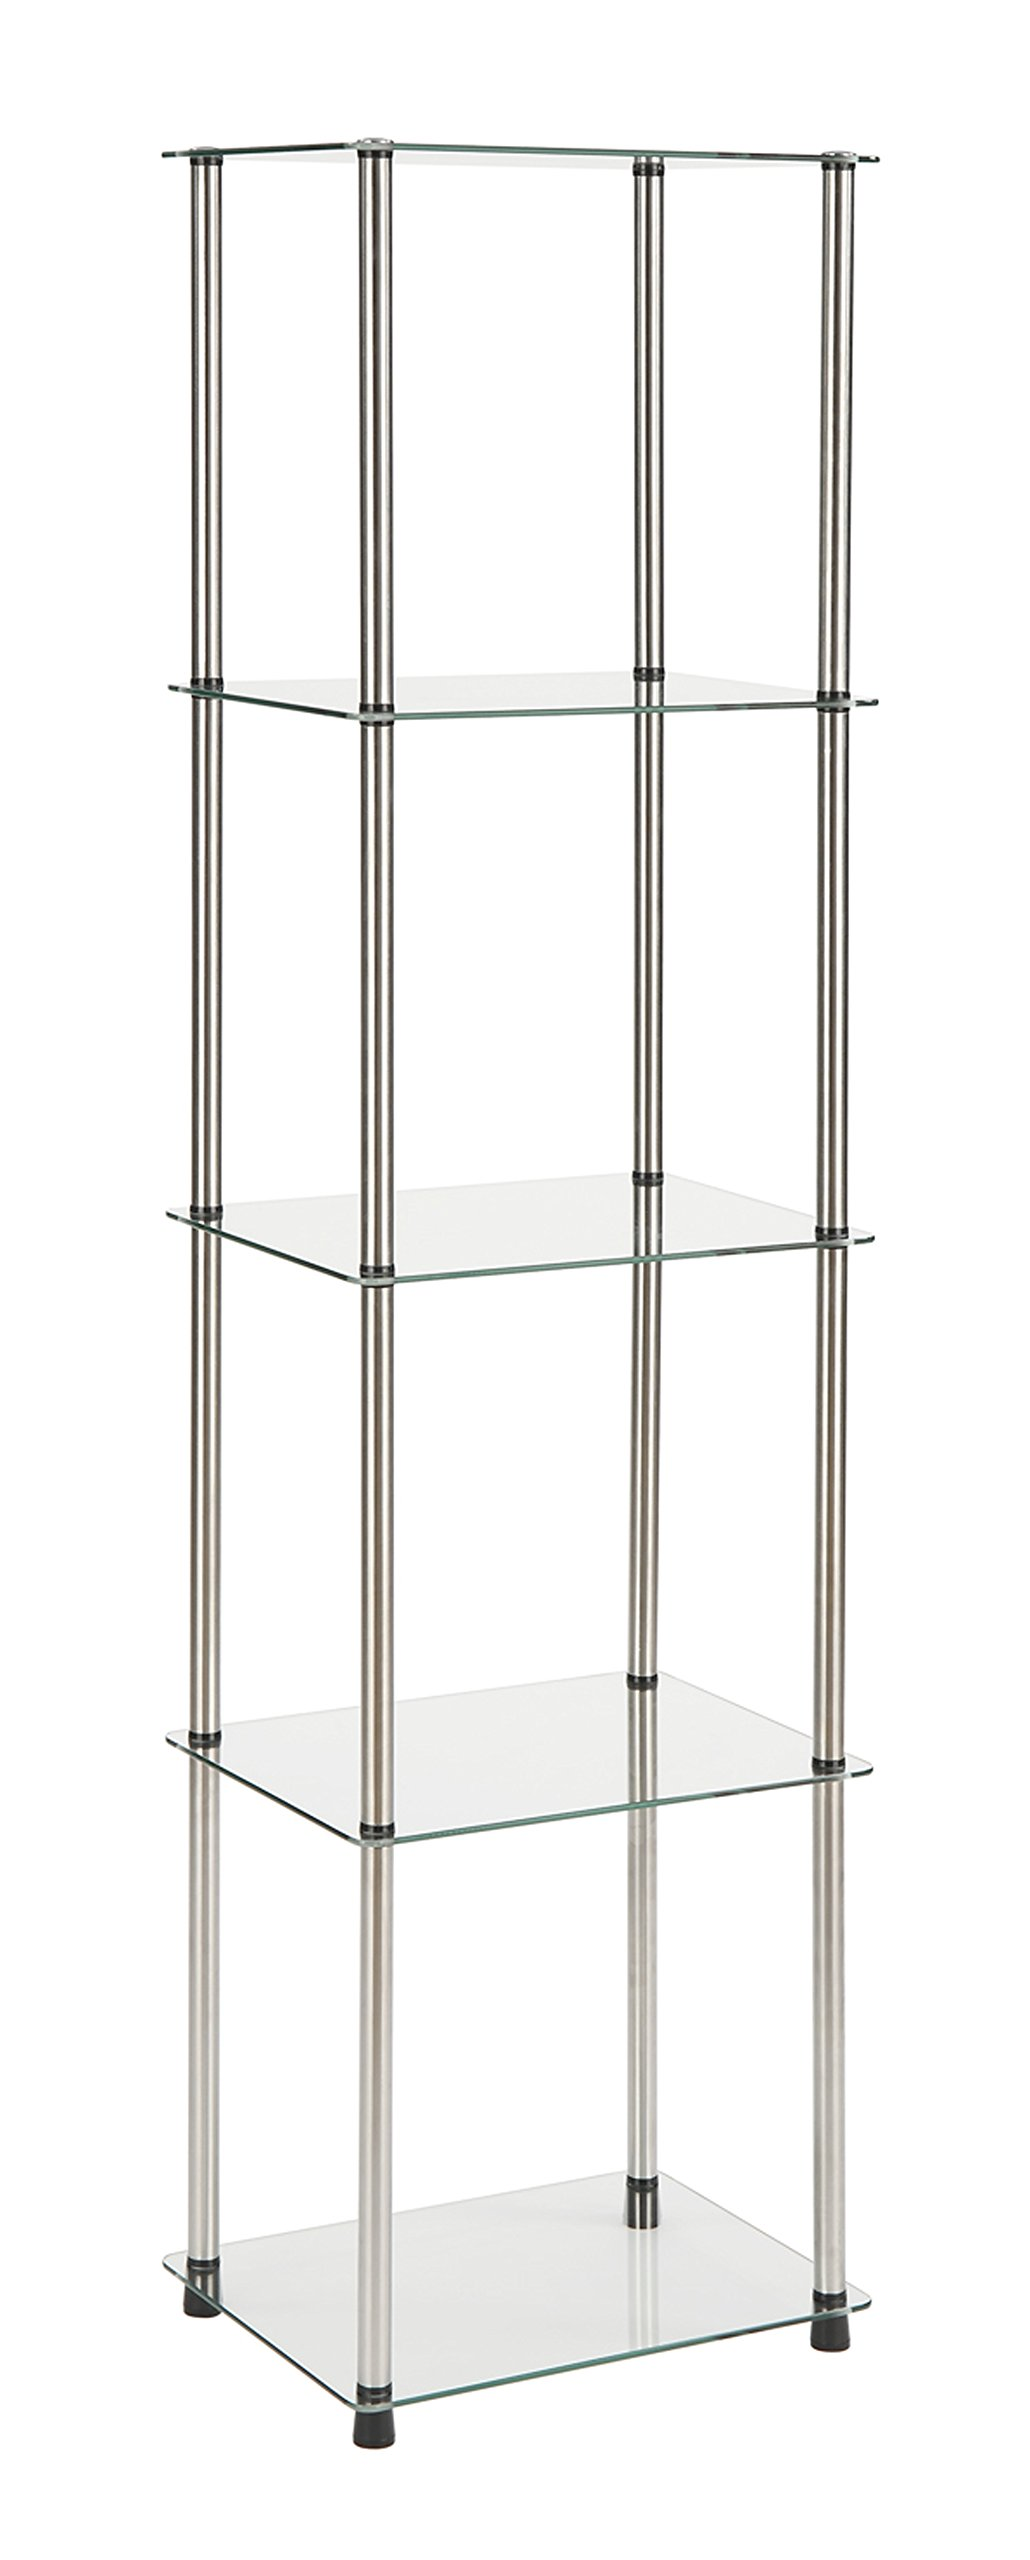 Convenience Concepts 5-Tier Glass Tower by Convenience Concepts